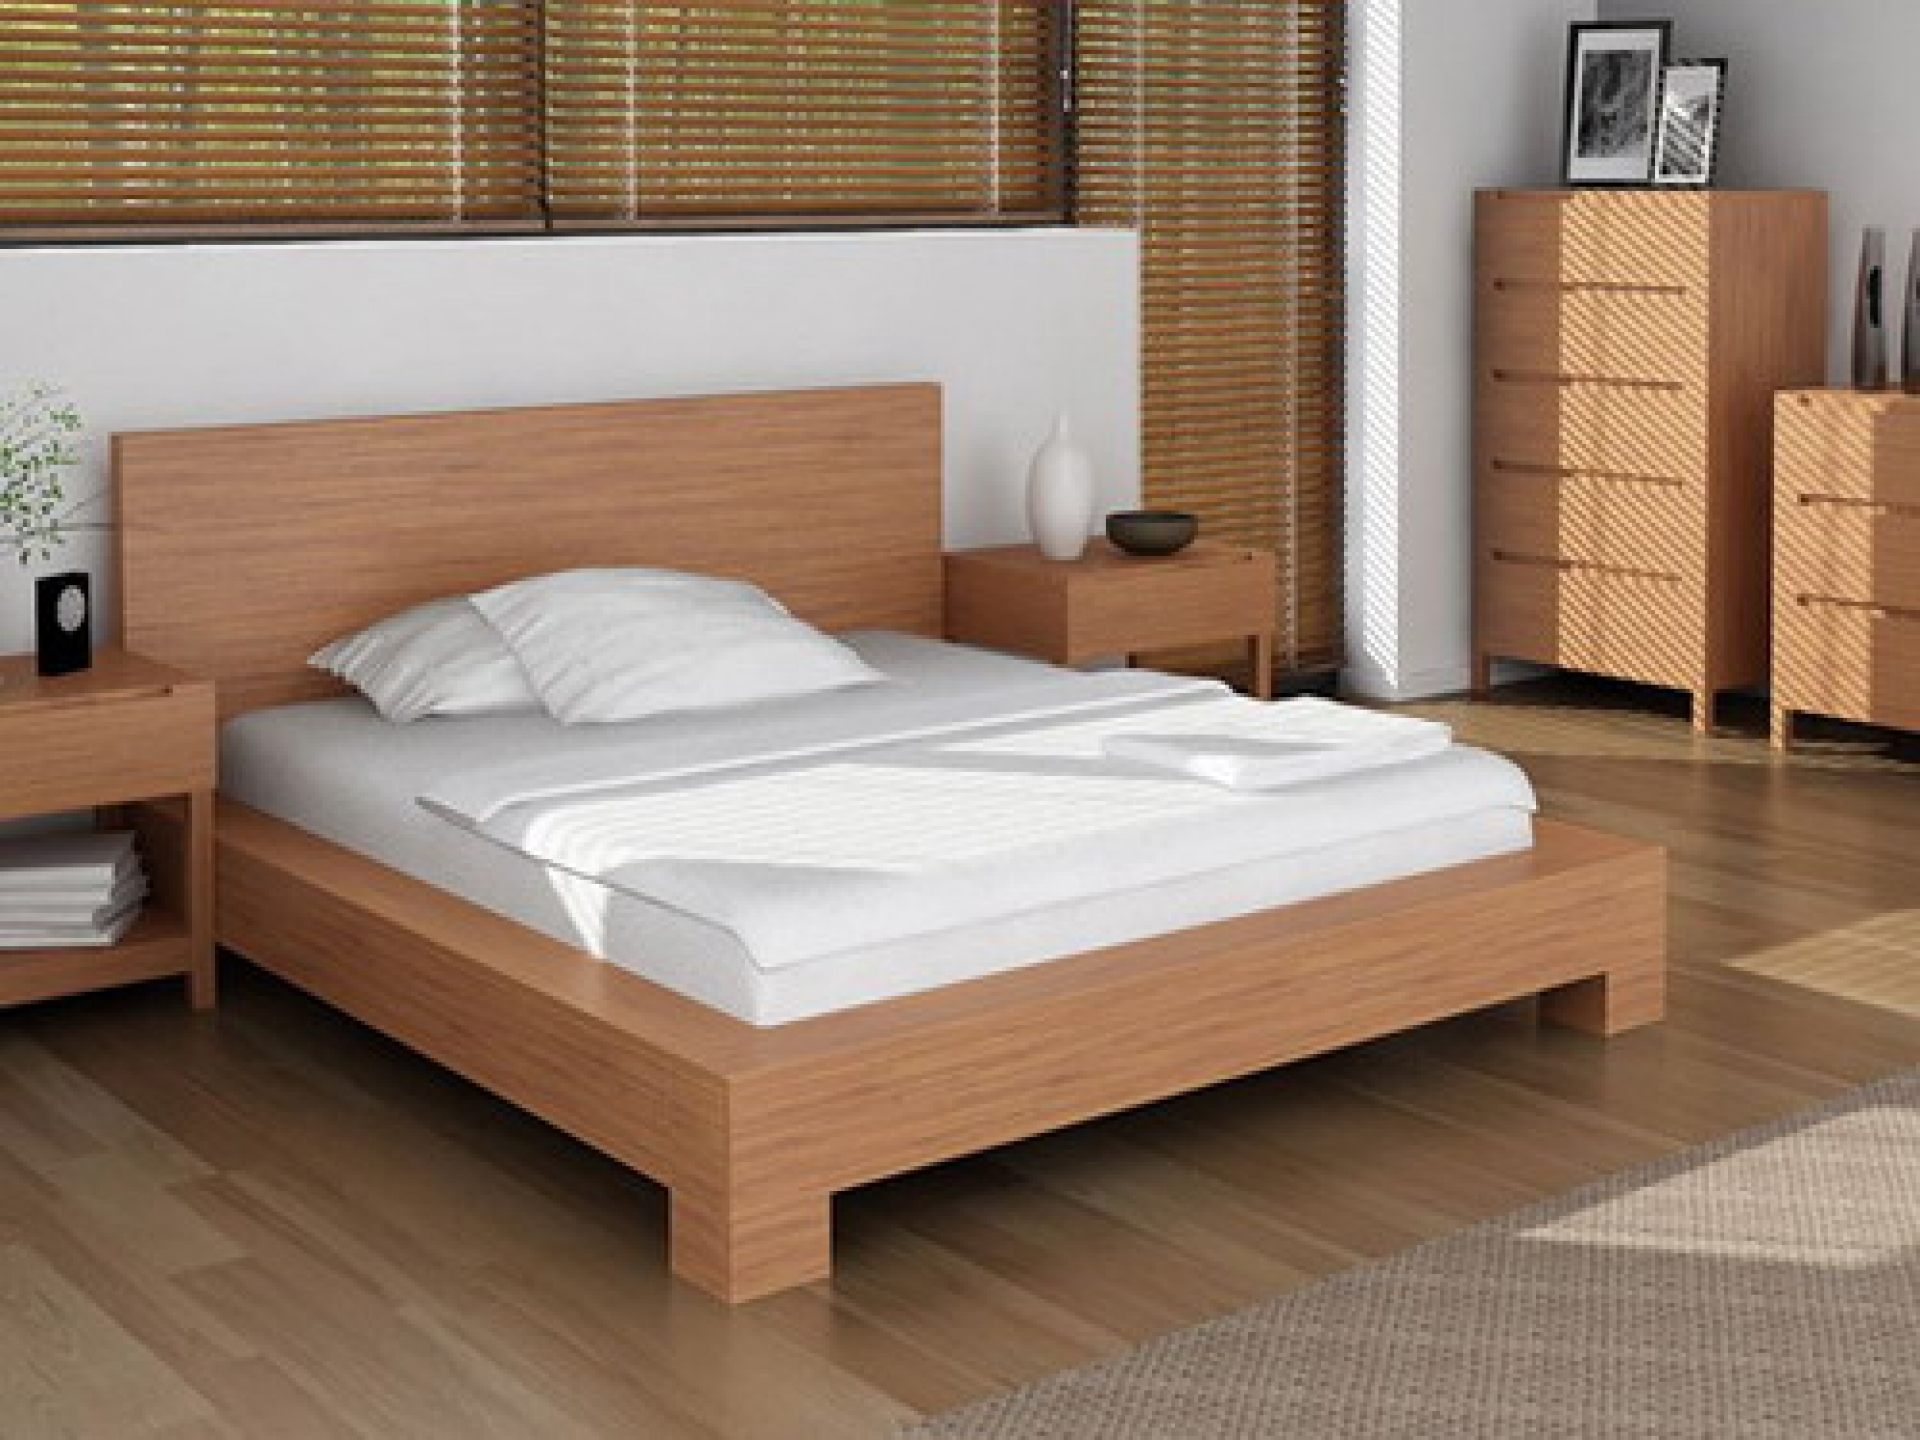 Simple wood bed frame ideas homesfeed Simple wooden bed designs